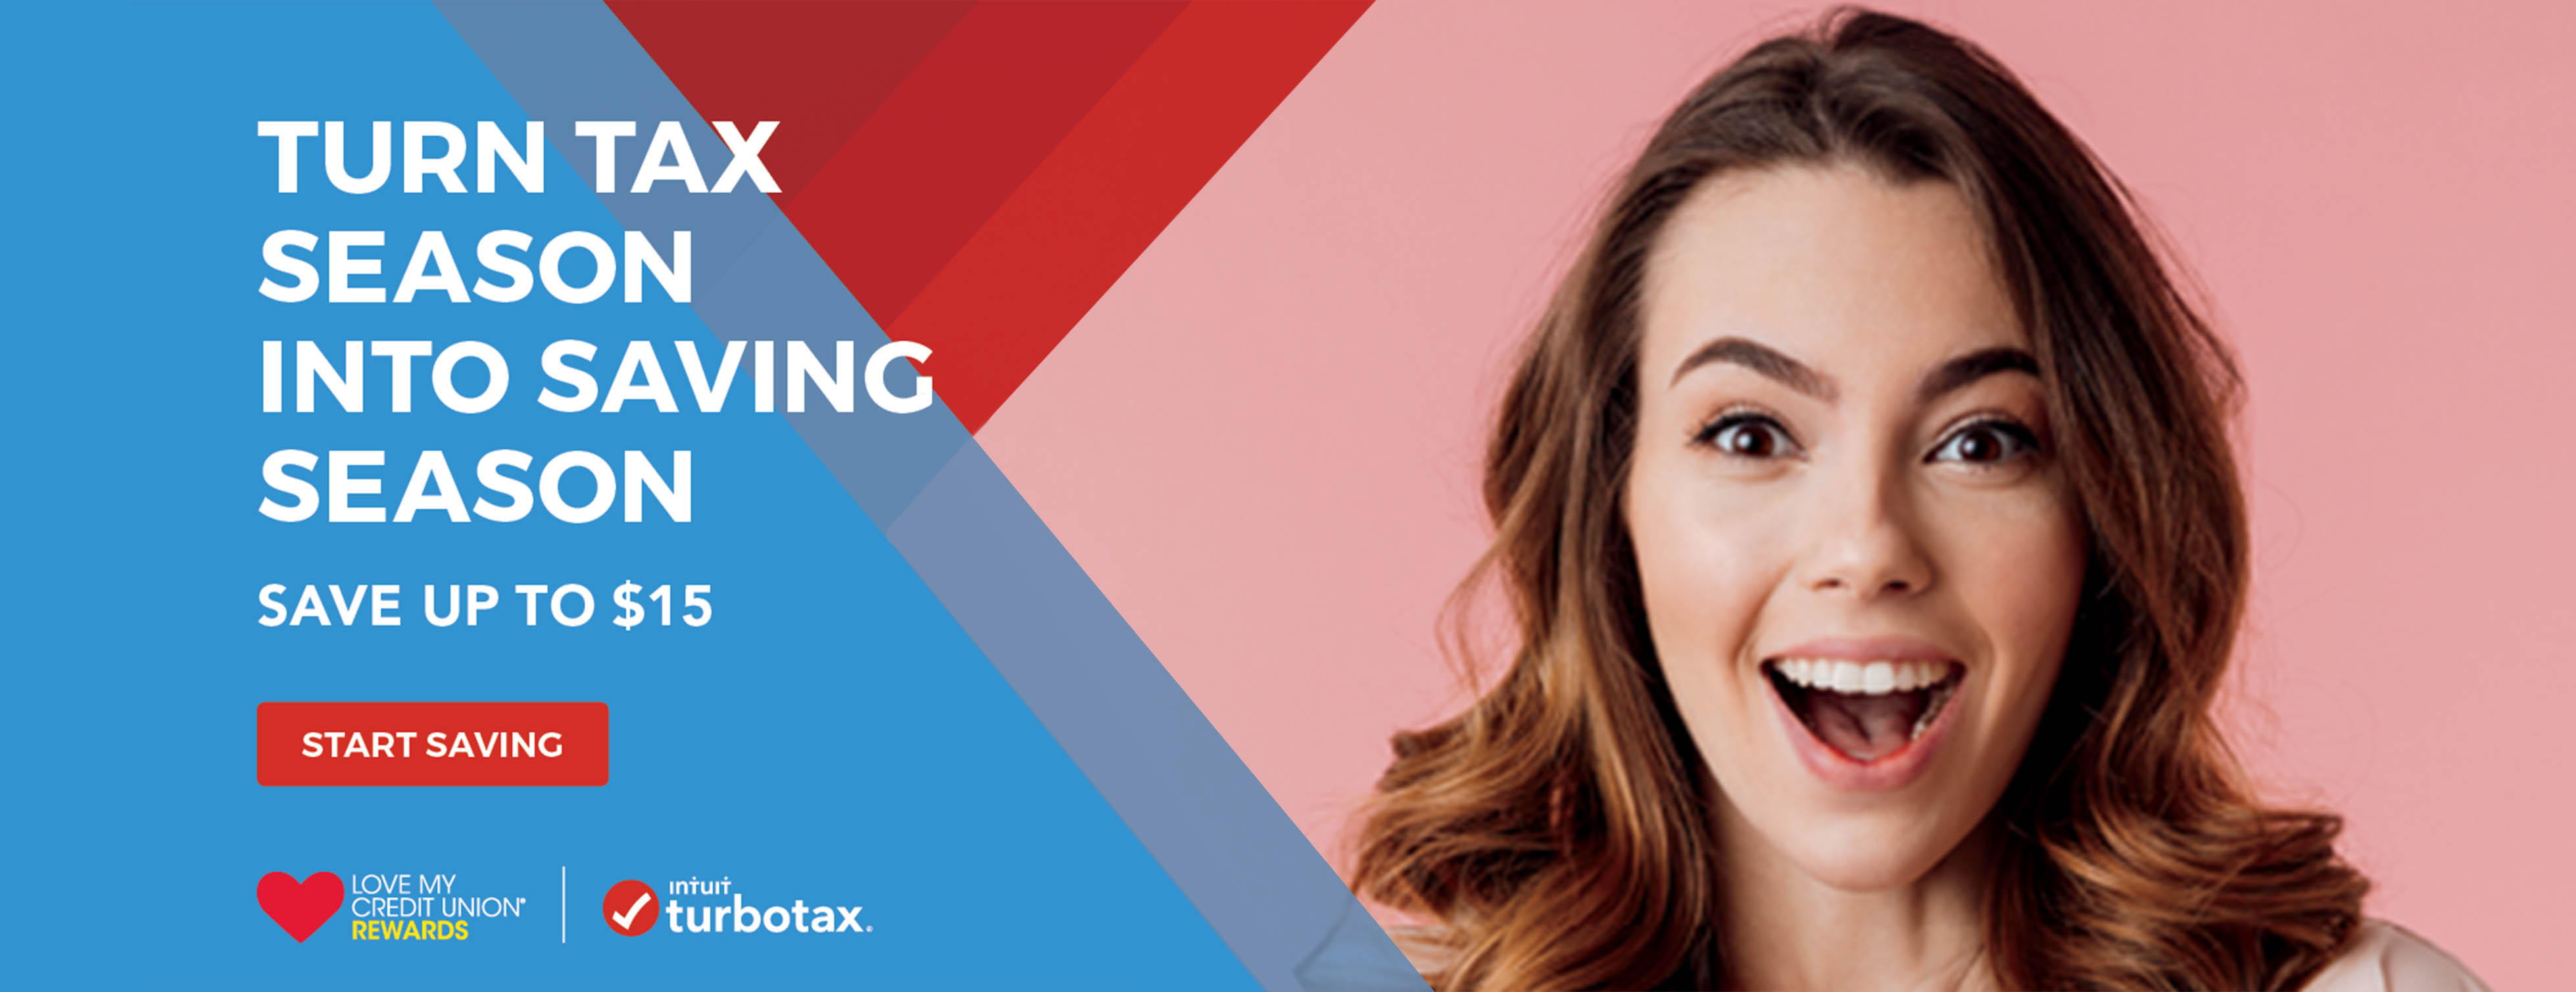 Turbo Tax Home Page Banners non sweepstakes